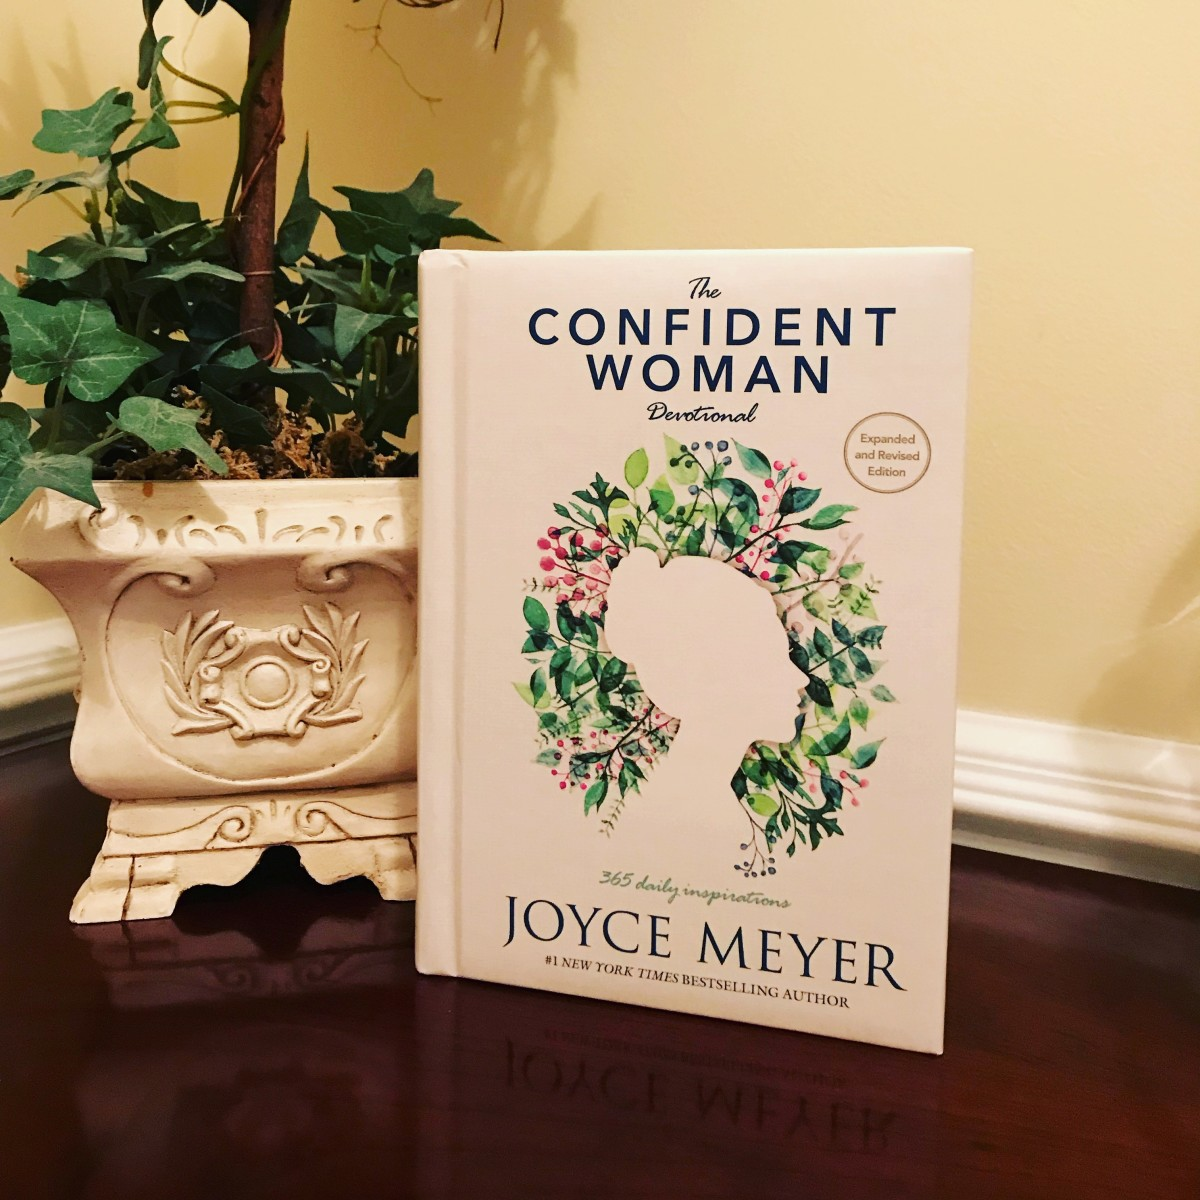 The Confident Woman Devotional is now available wherever books are sold.